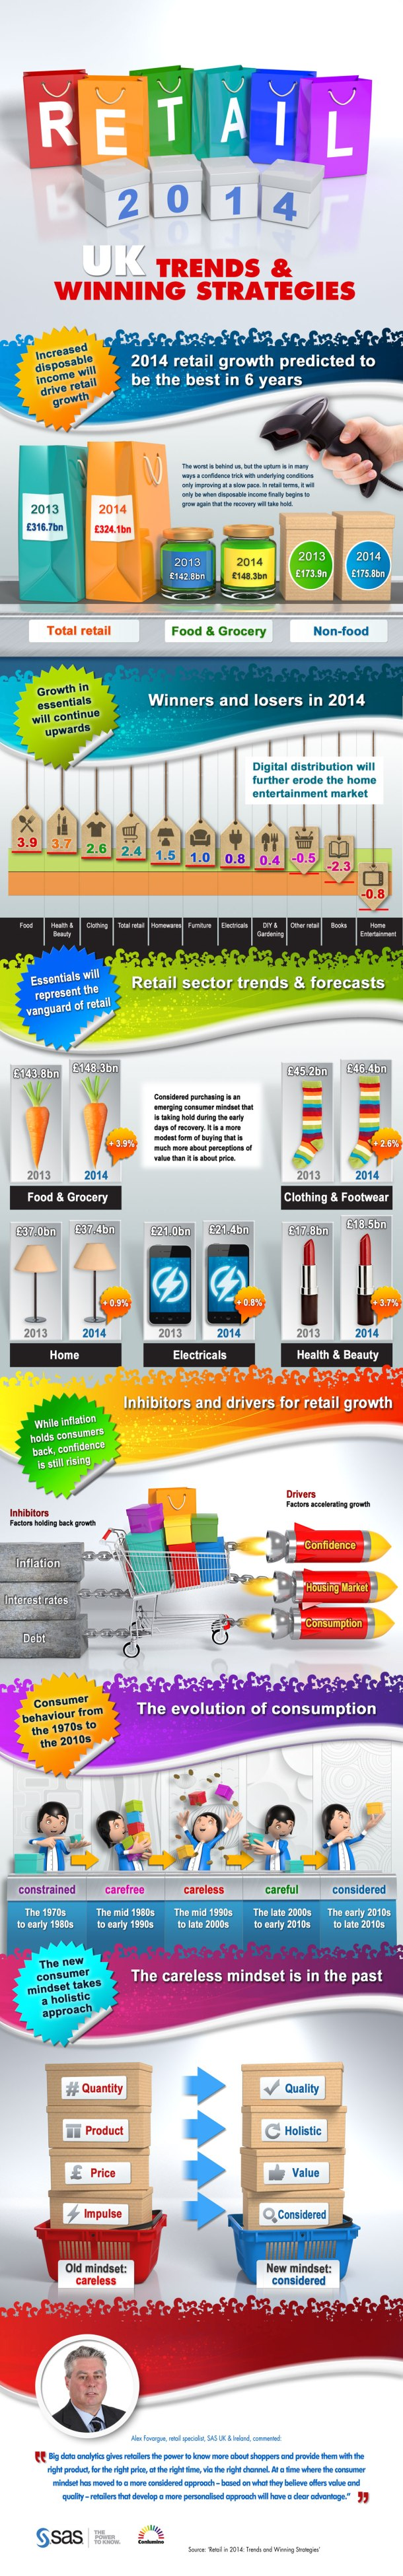 SAS_infoGraphic_Retail_2014